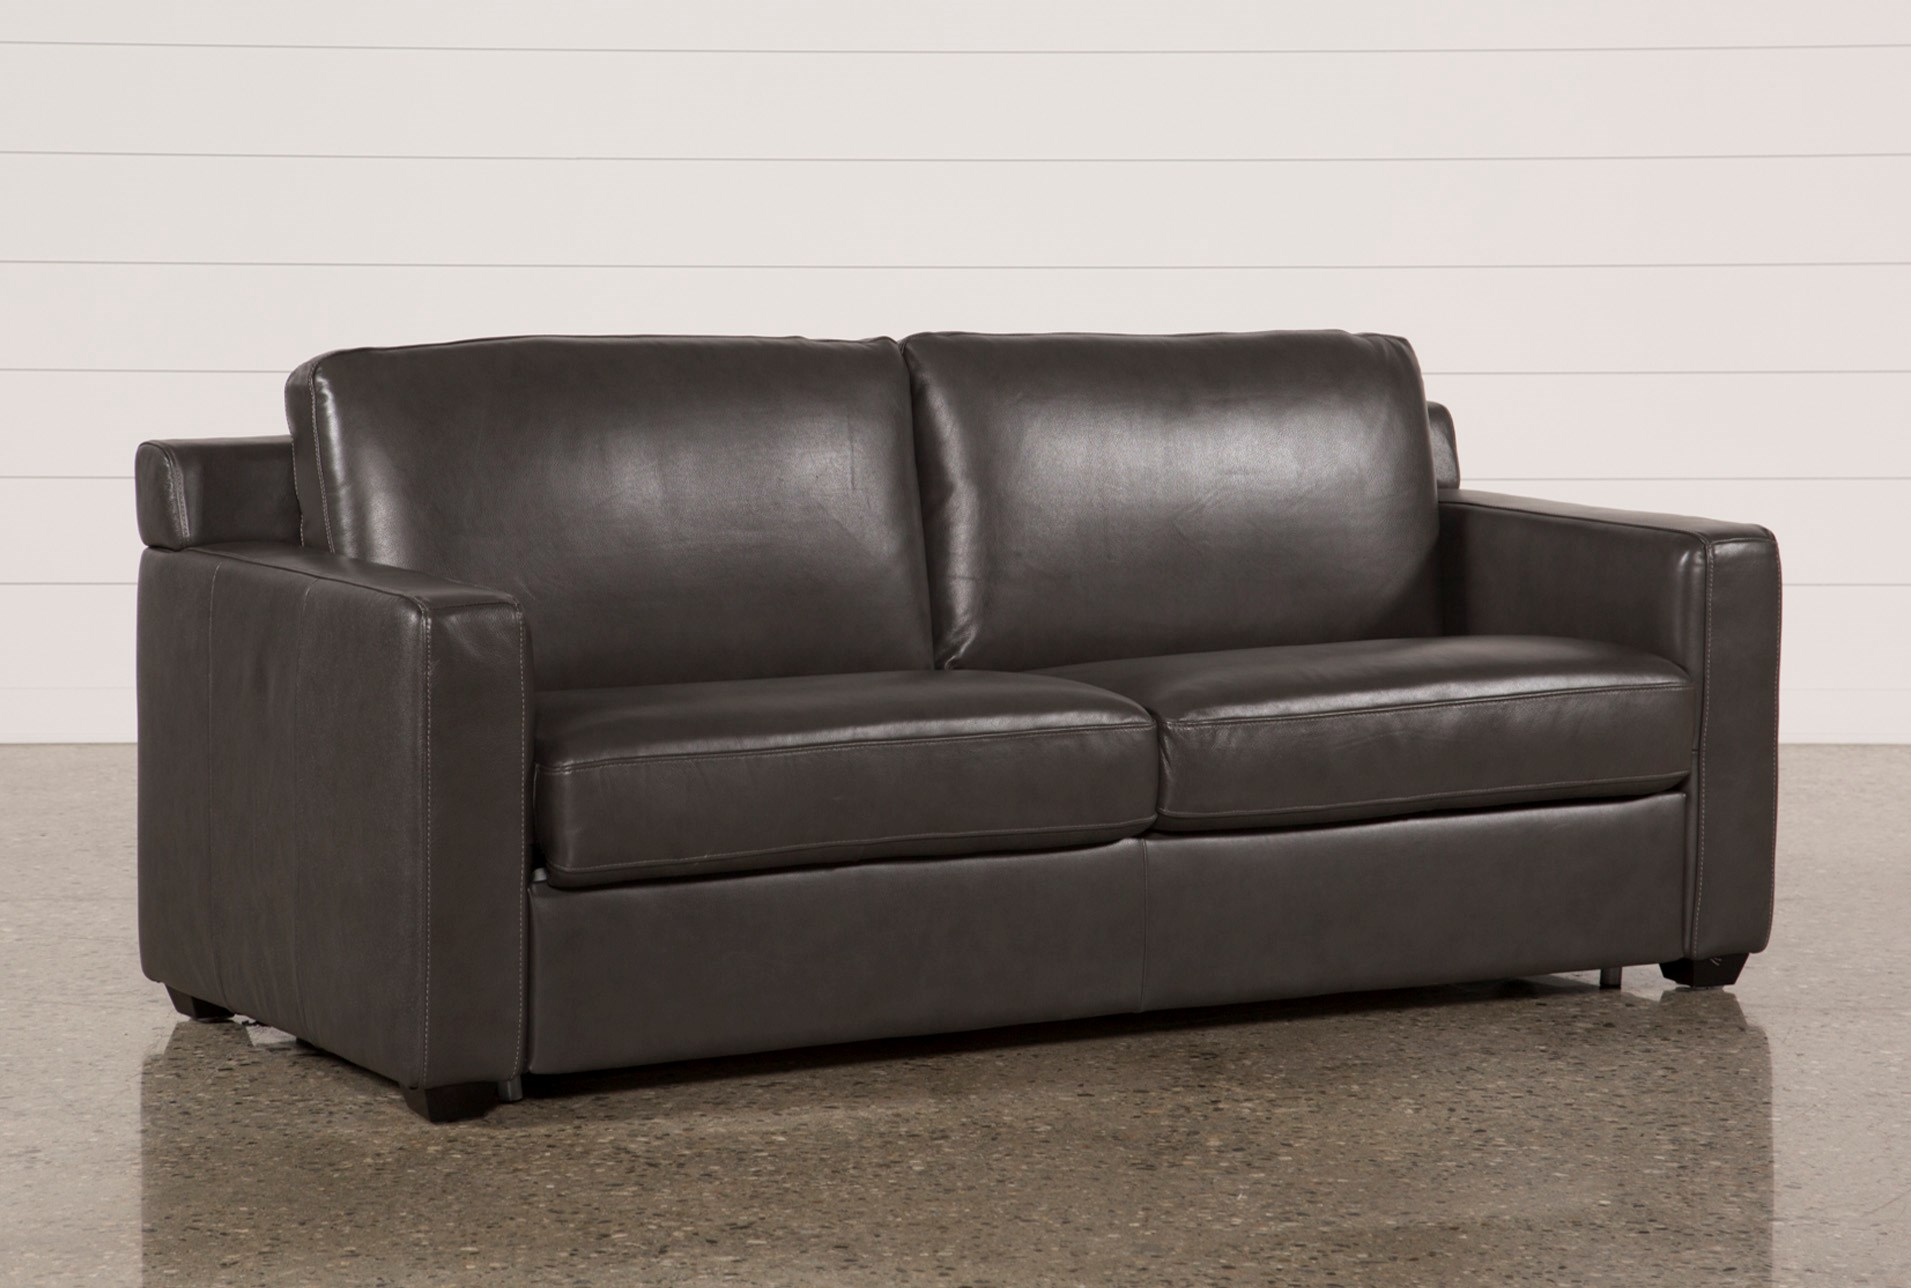 Nolan Leather Dark Grey Sleeper Qty 1 Has Been Successfully Added To Your Cart